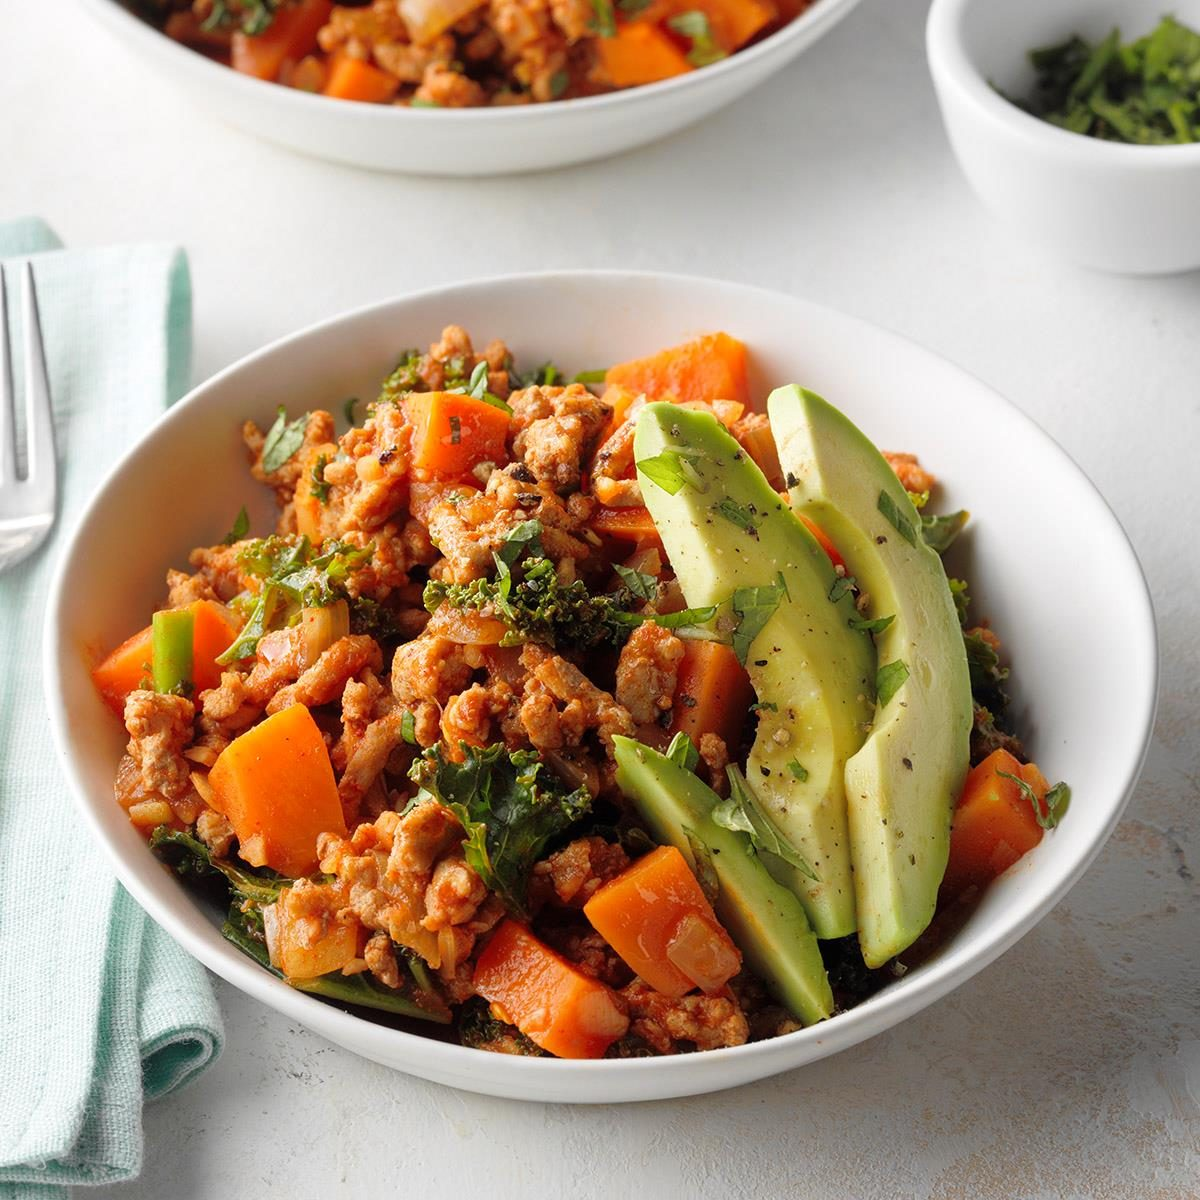 Thursday: One-Dish Ground Turkey Sweet Potato Skillet